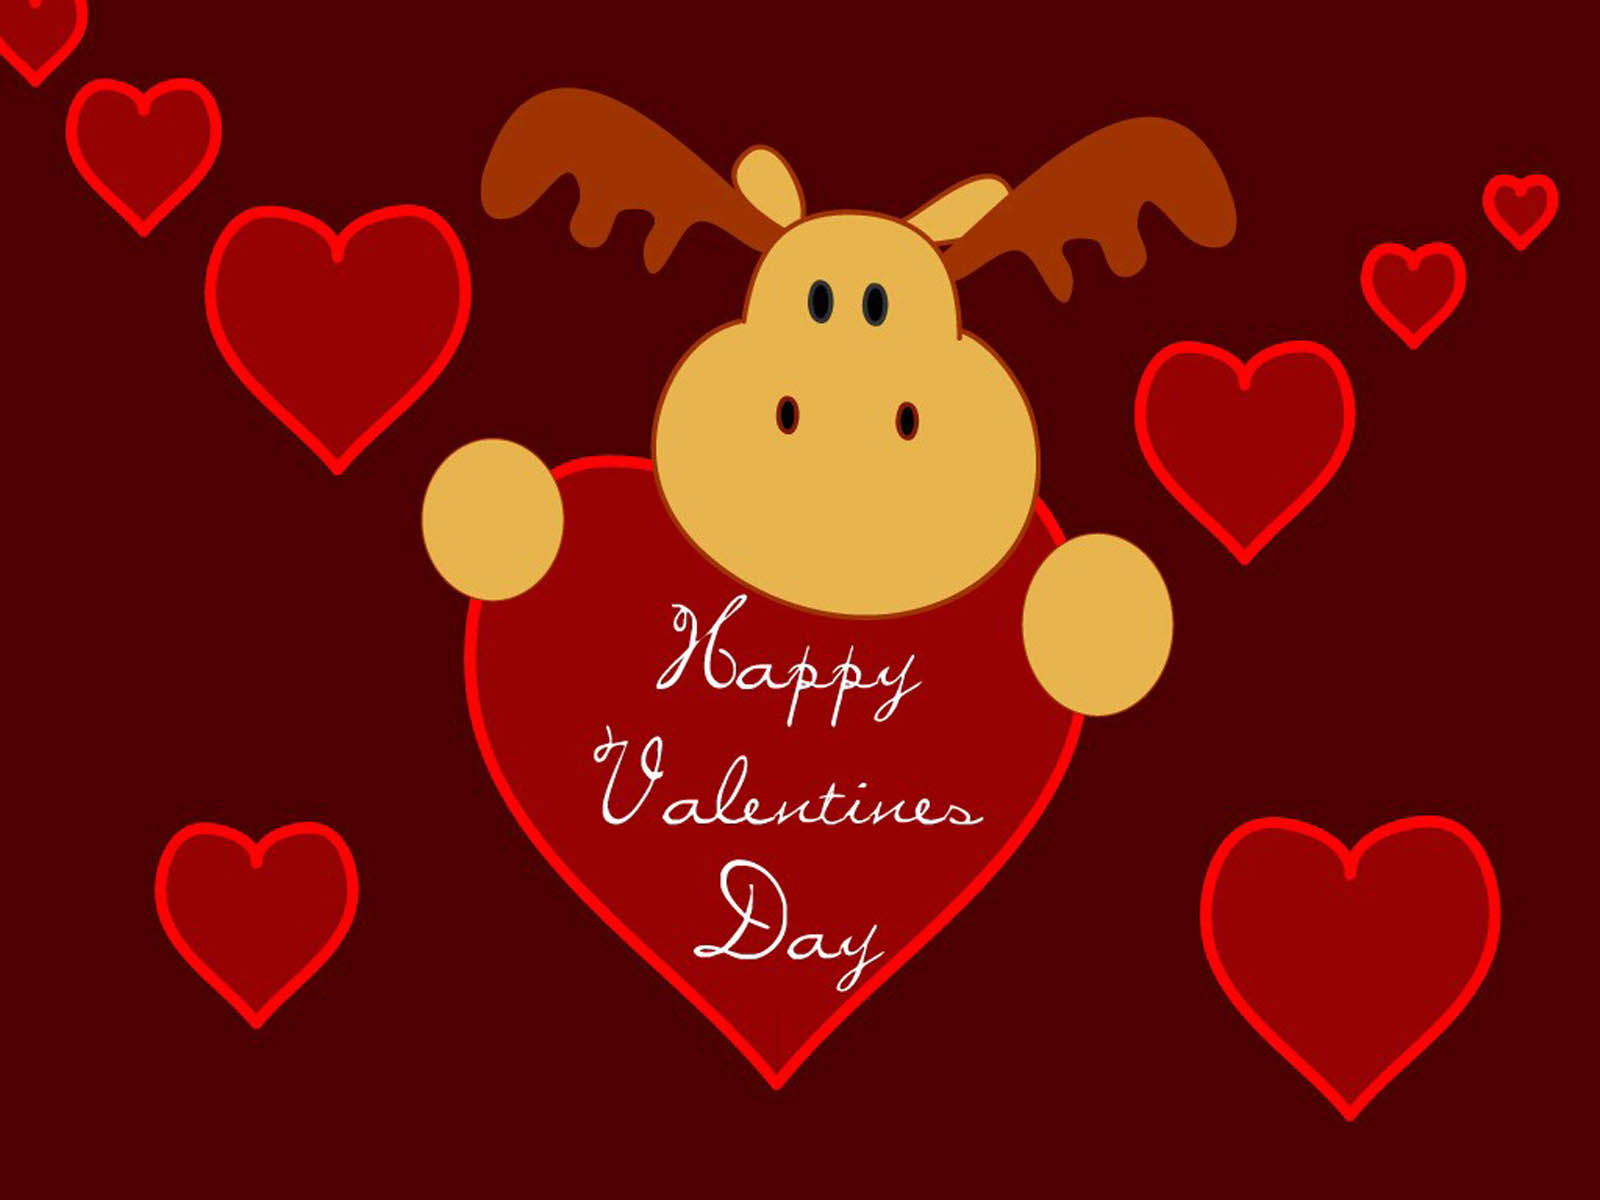 valentines day backgrounds wallpapers - photo #4